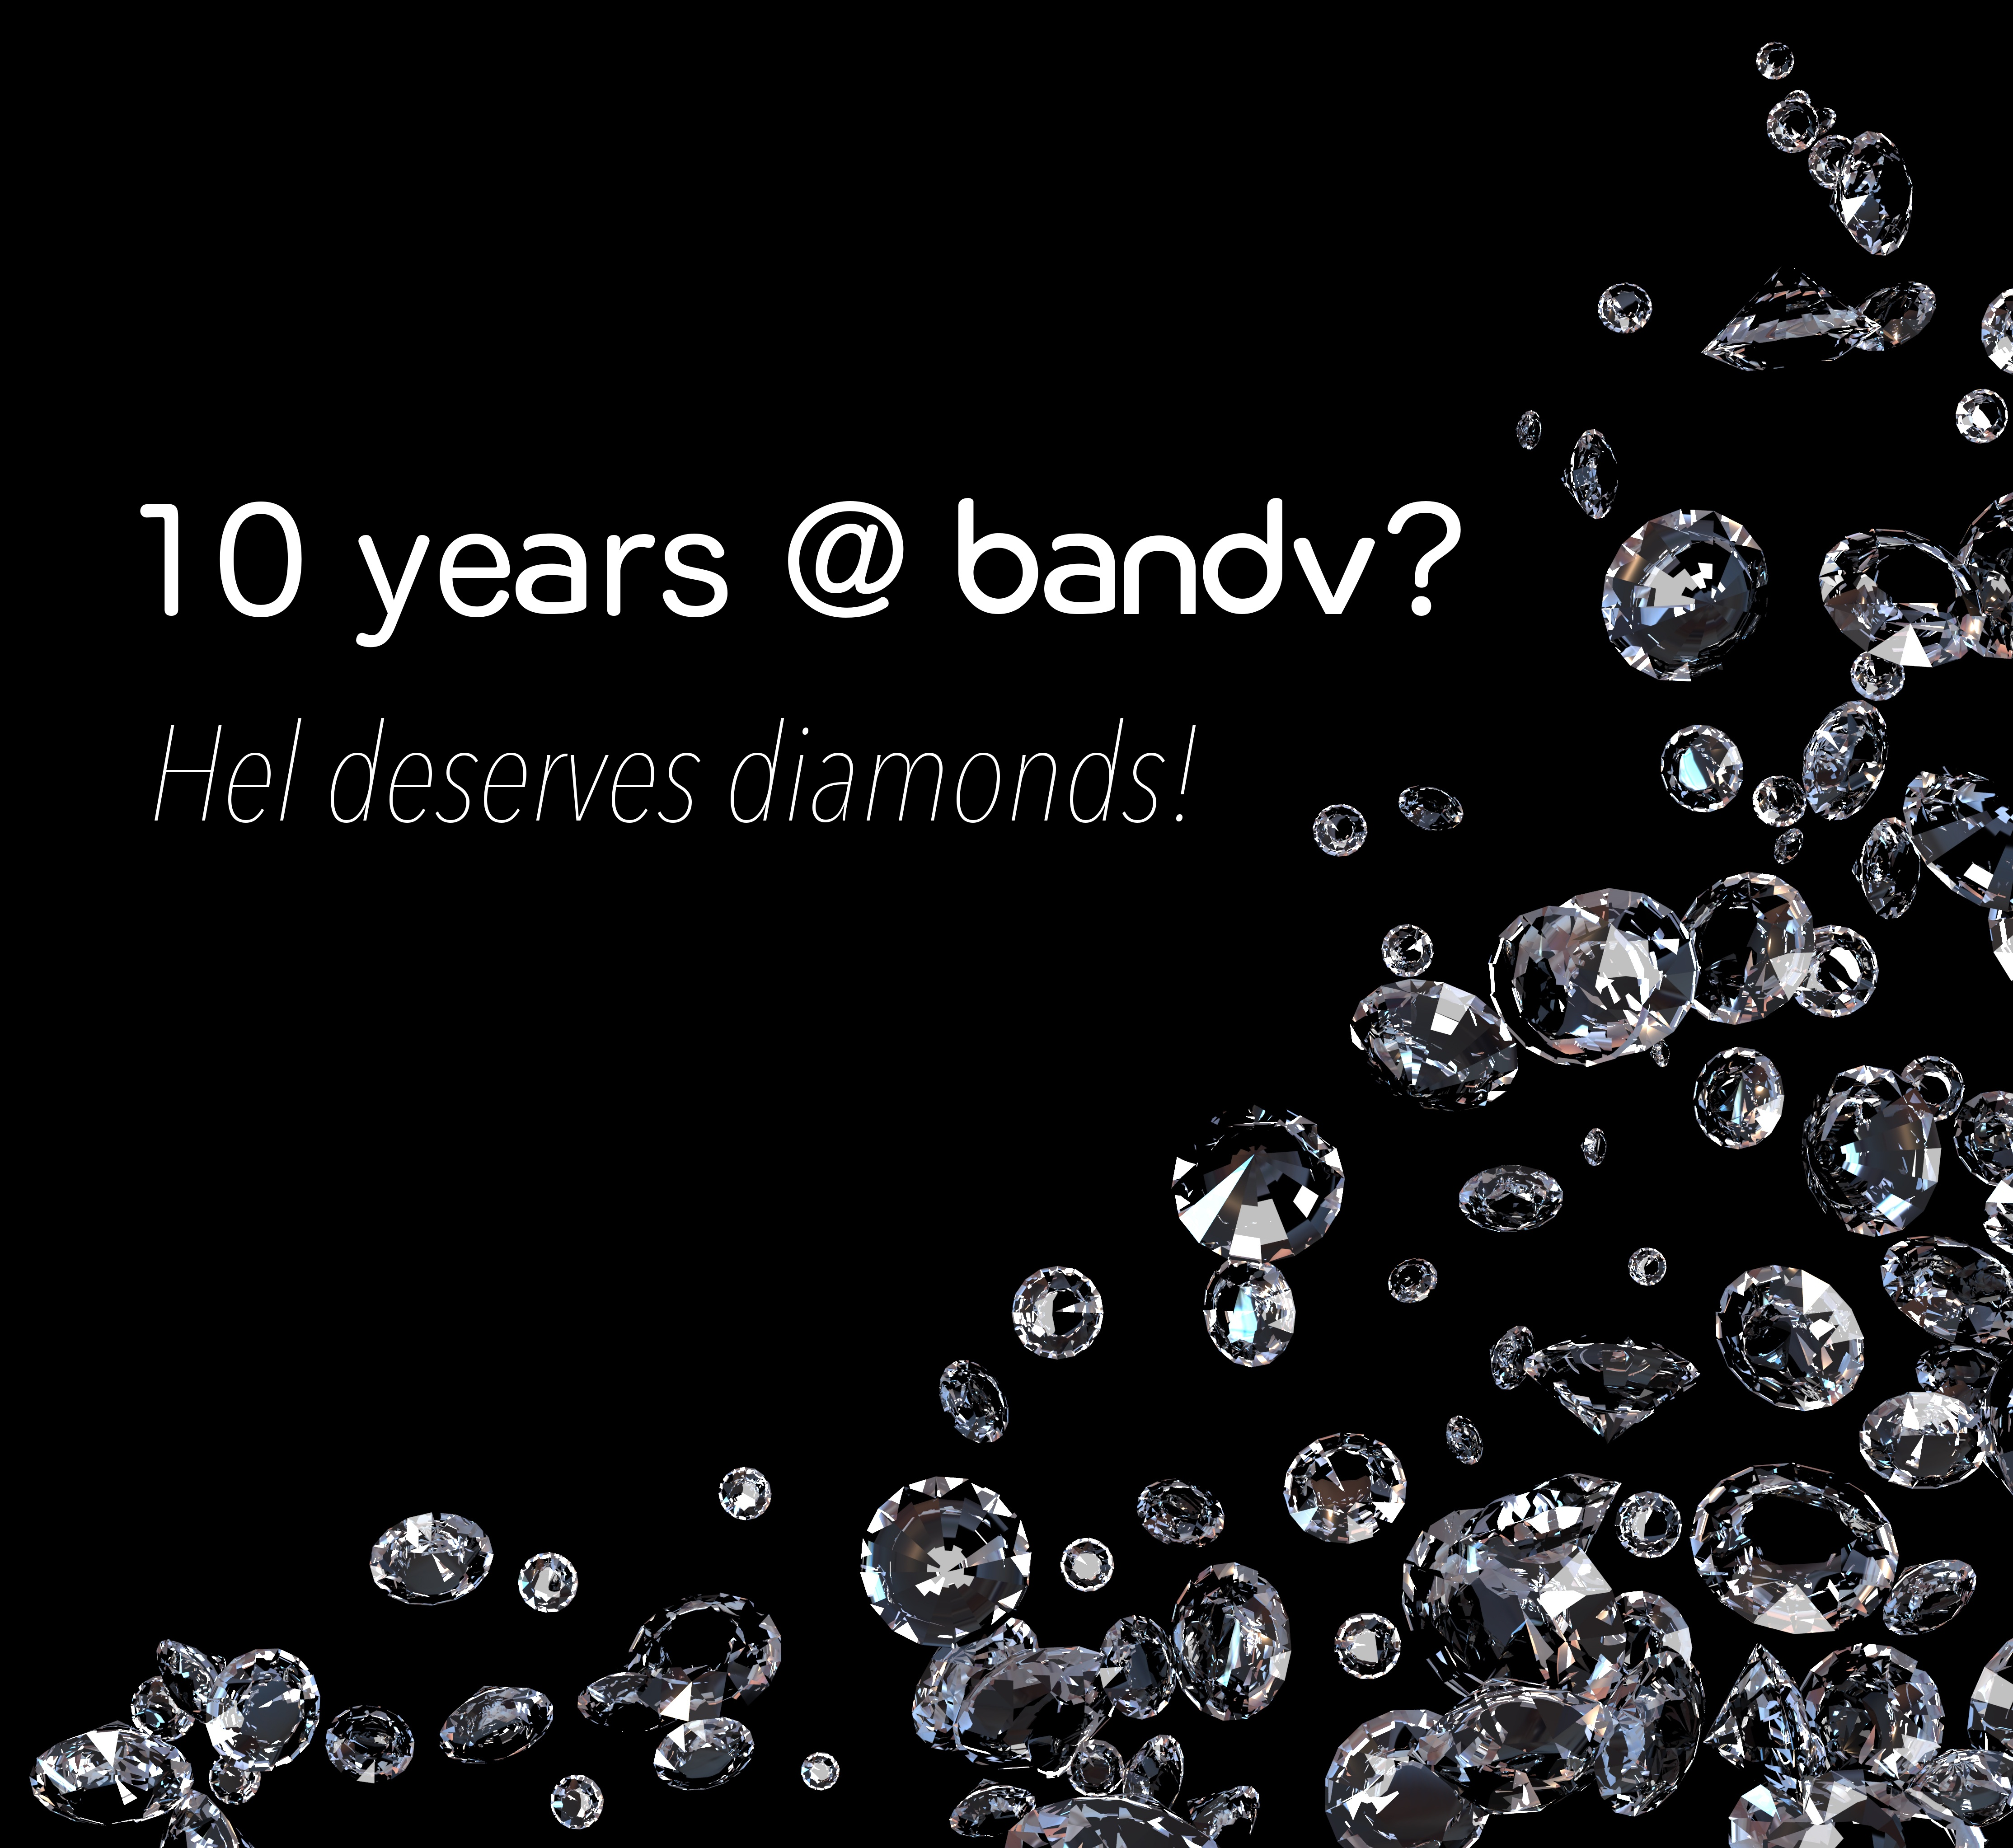 Helen Berners 10 Years @ bandv Diamonds.jpg